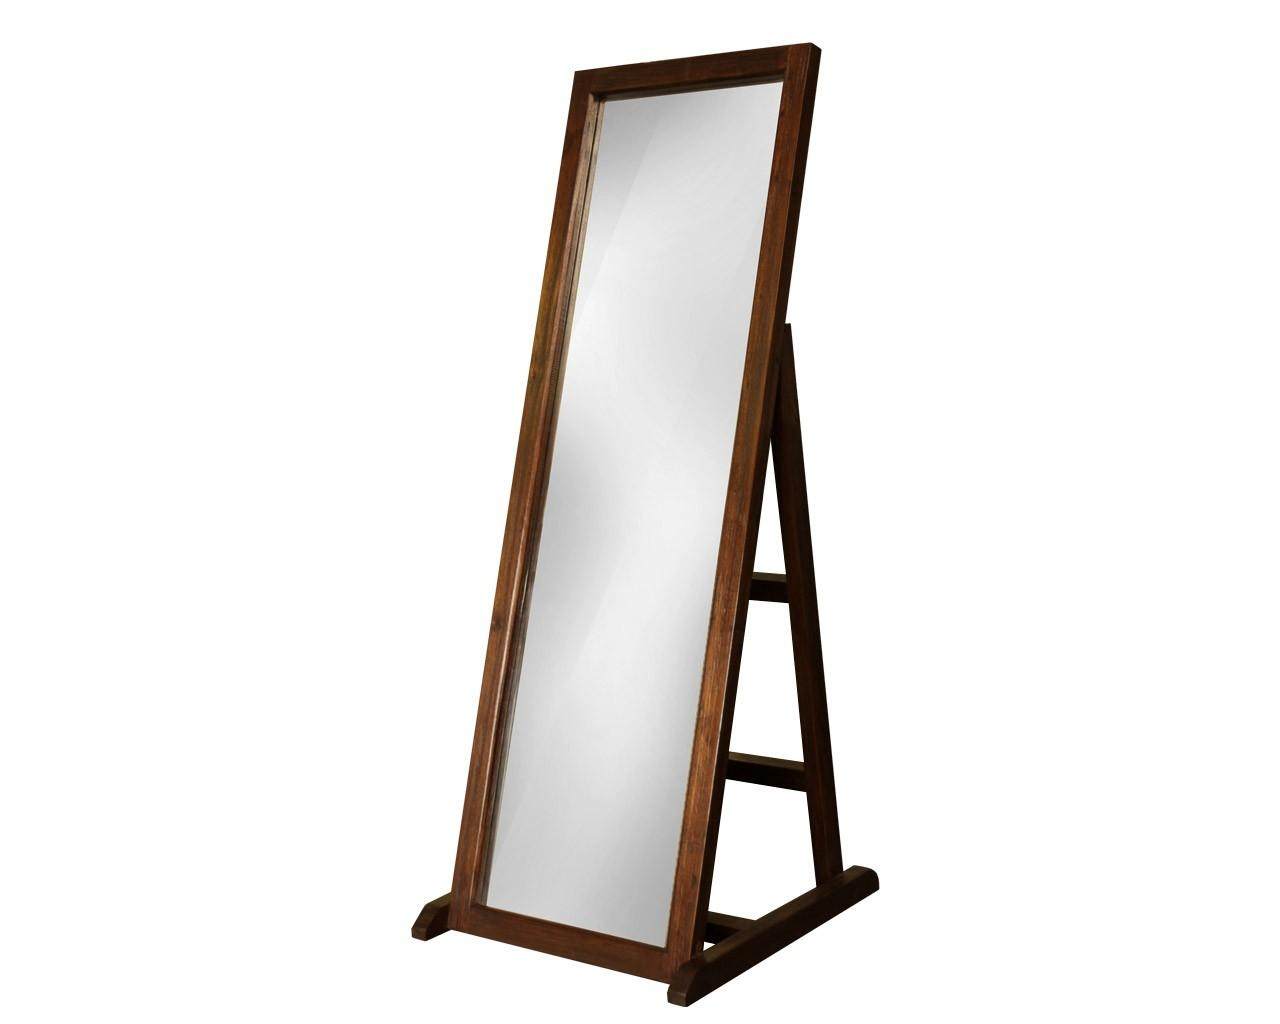 Cheval Mirror Frame – Decorative Cheval Mirrors For Your Home With Modern Cheval Mirror (View 8 of 20)